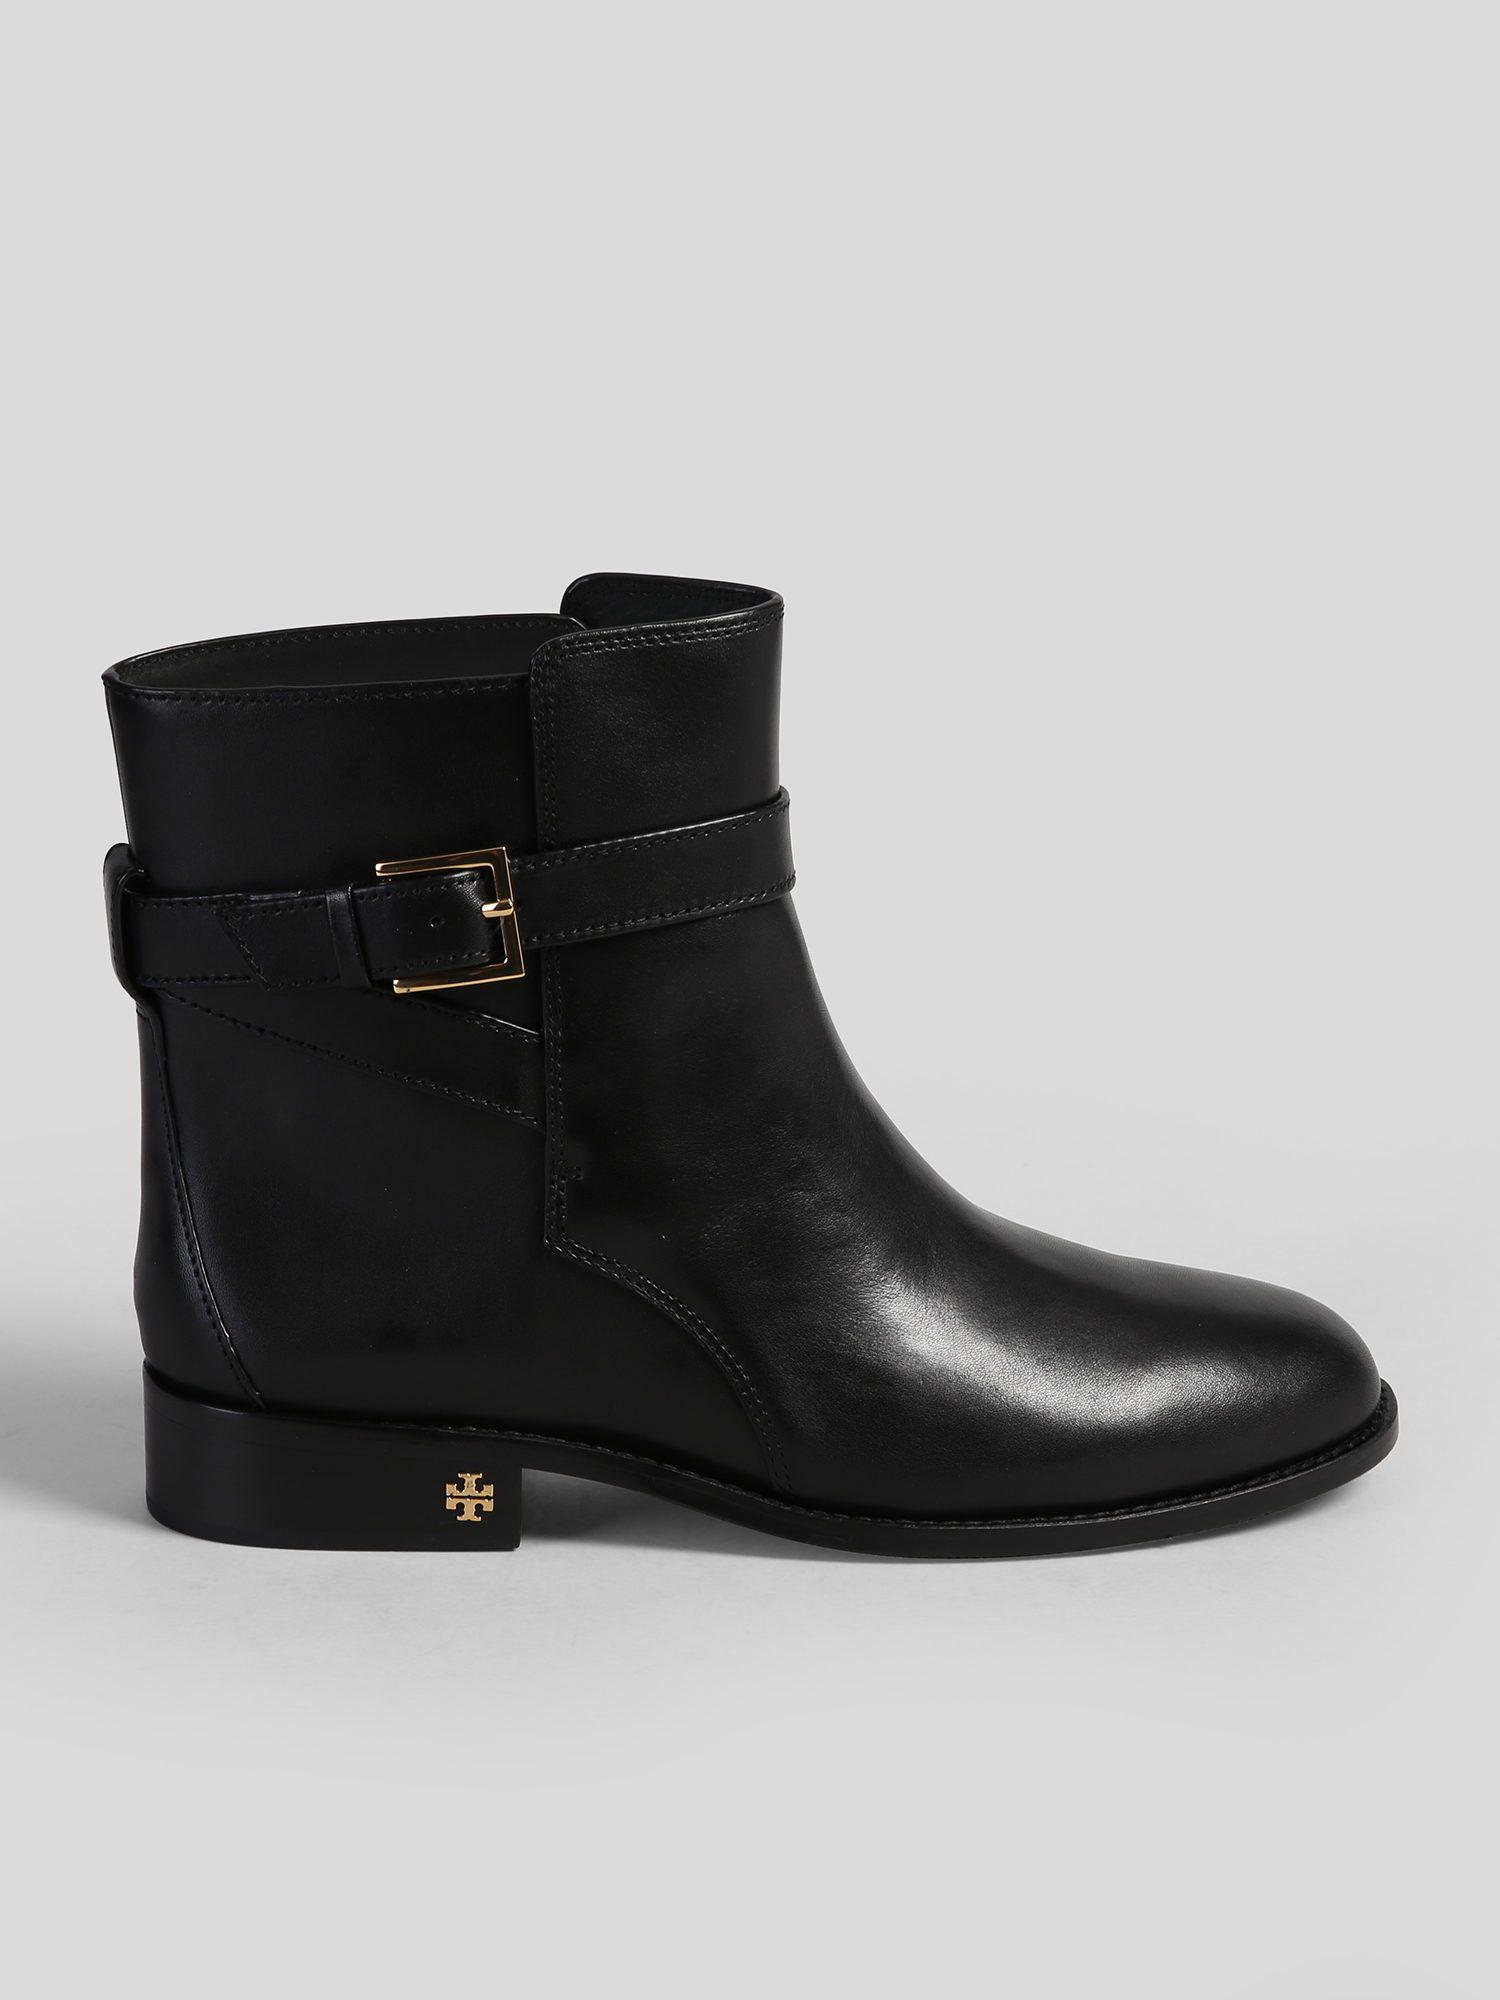 e6b708dc576 Lyst - Tory Burch Logo Detail Leather Ankle Boots in Black